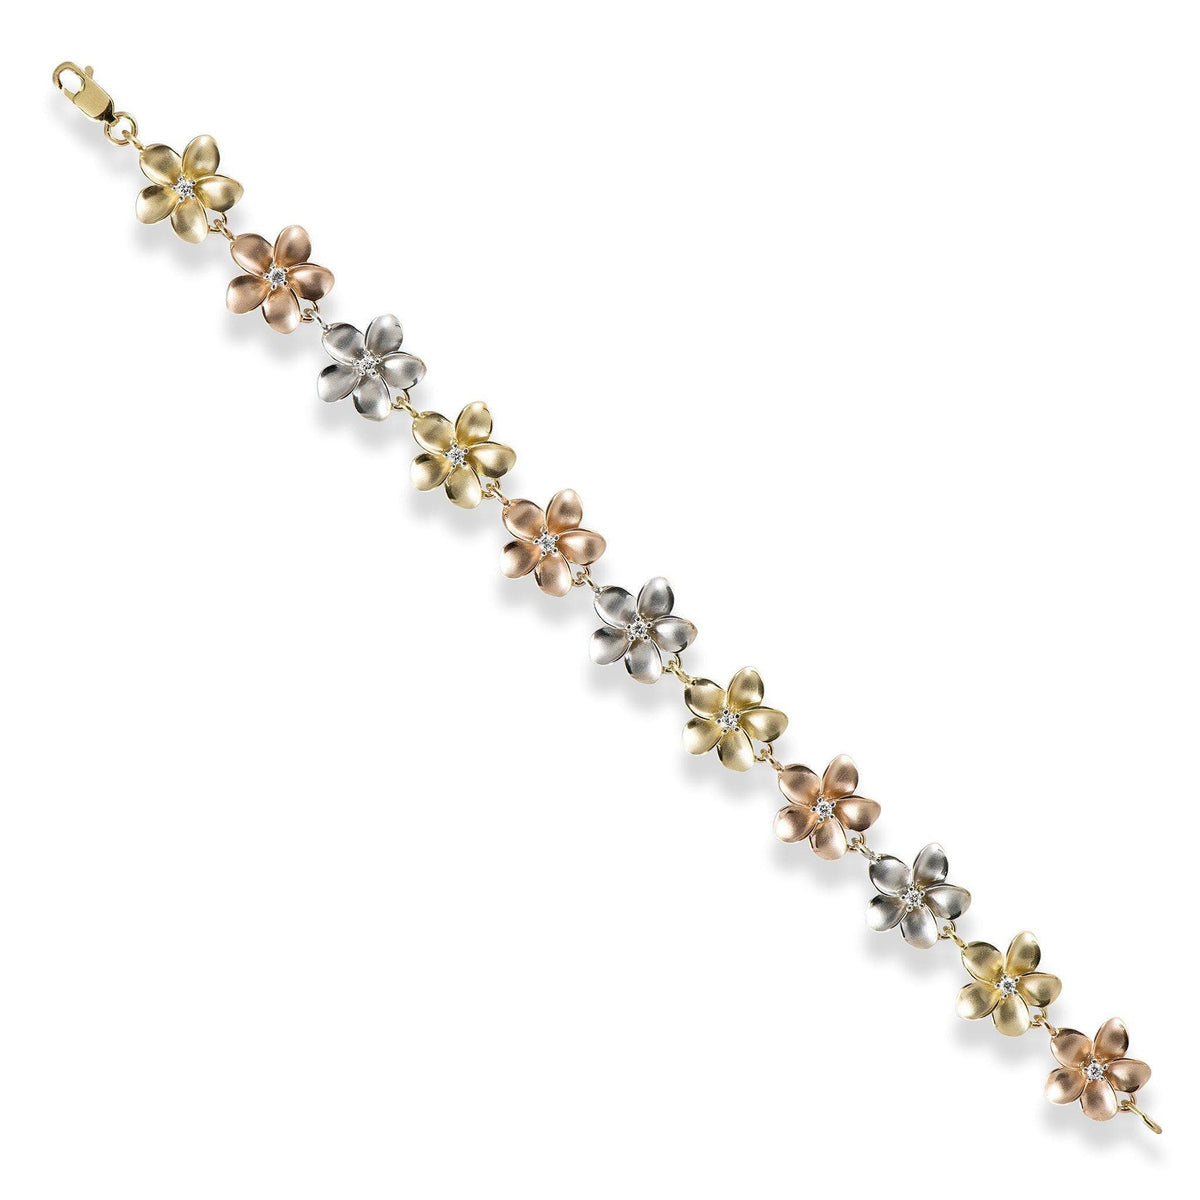 Plumeria Bracelet with Diamonds in 14K Yellow, Rose and White Gold - 7.25""